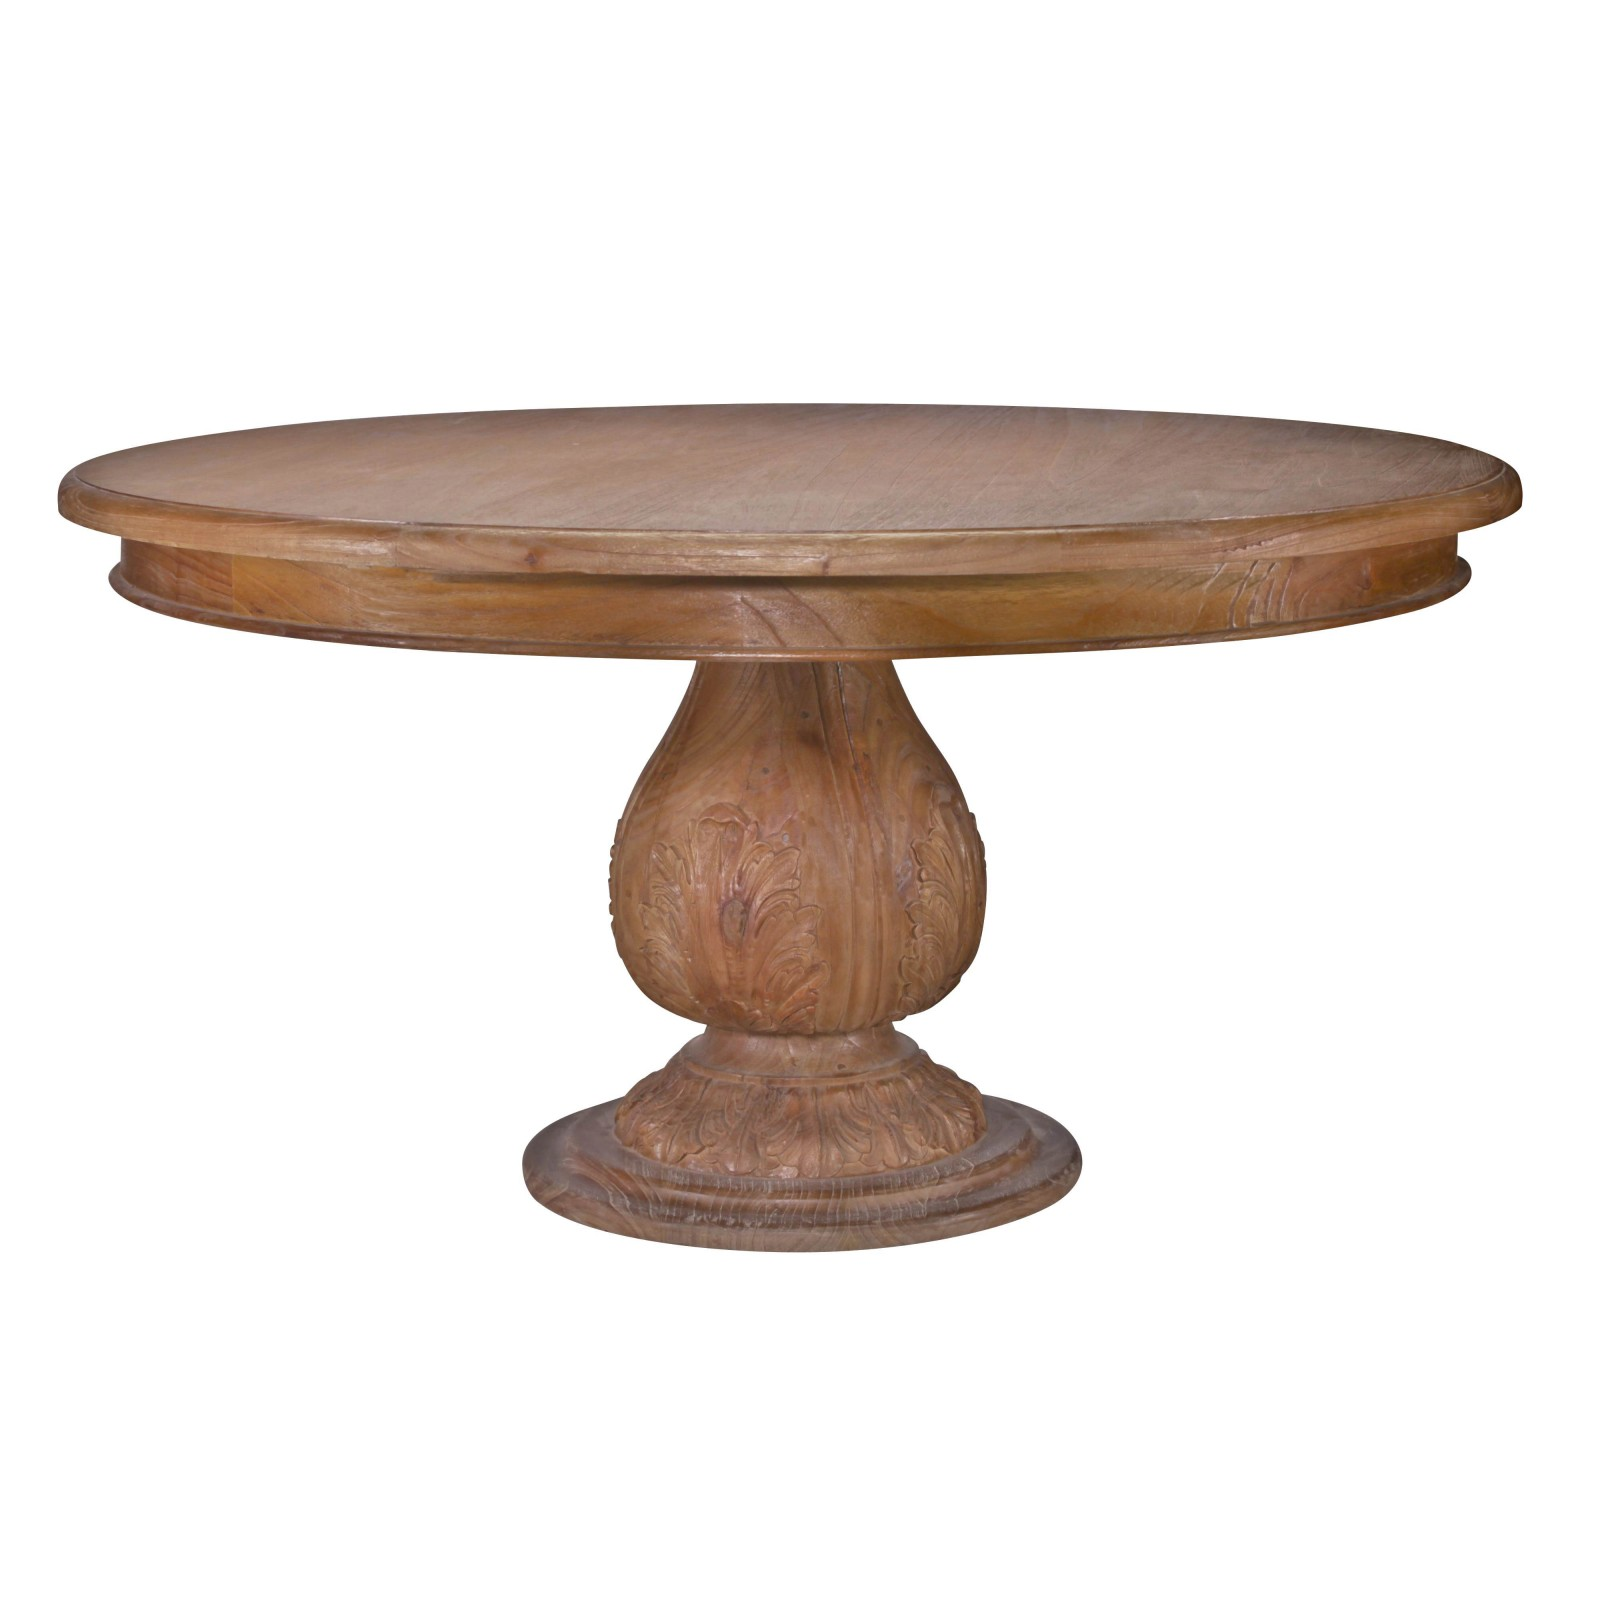 Dining Room Tables Bench Seating Acorn Round Pedestal Large Dining Table 150 Cm Great